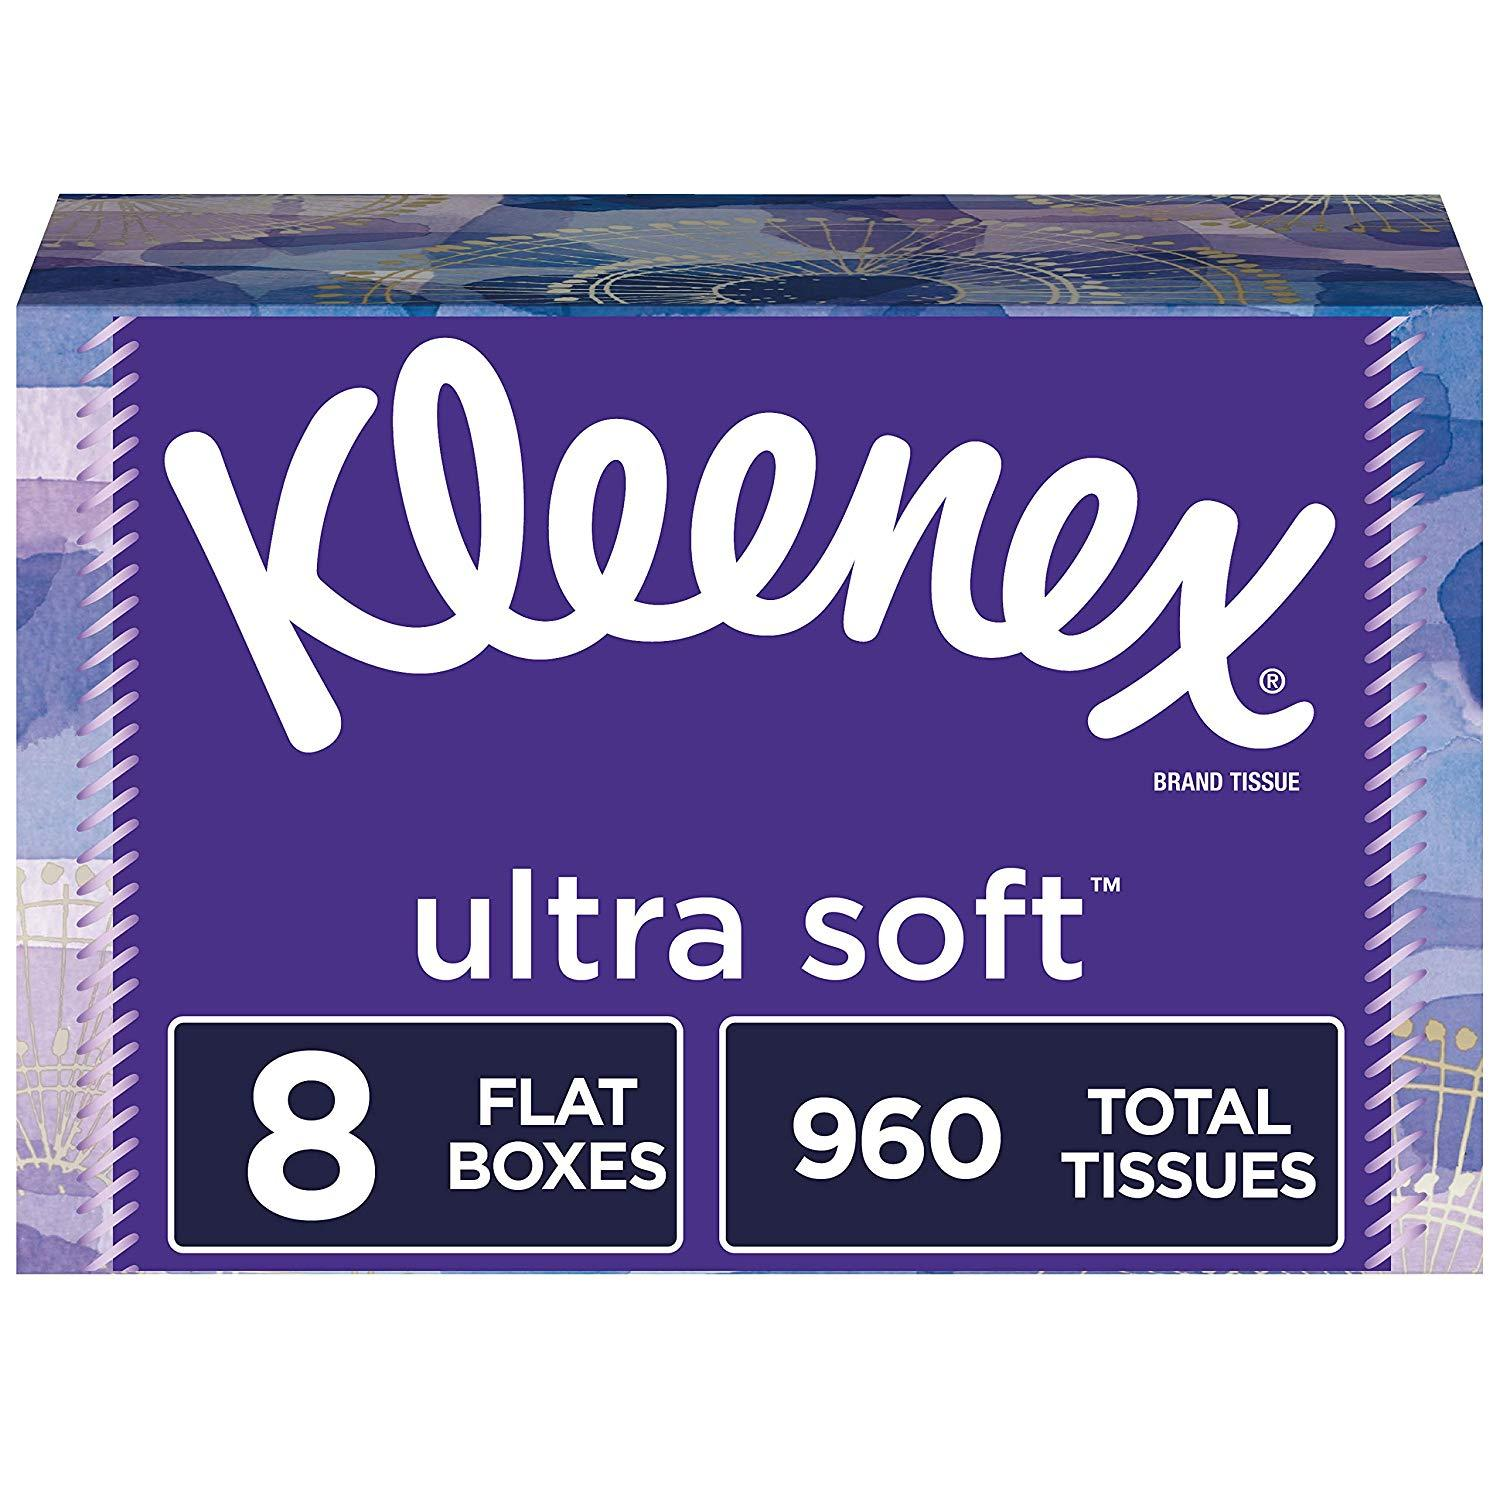 24 Pack of Kleenex Ultra Soft Facial Tissues for $25.20 Shipped